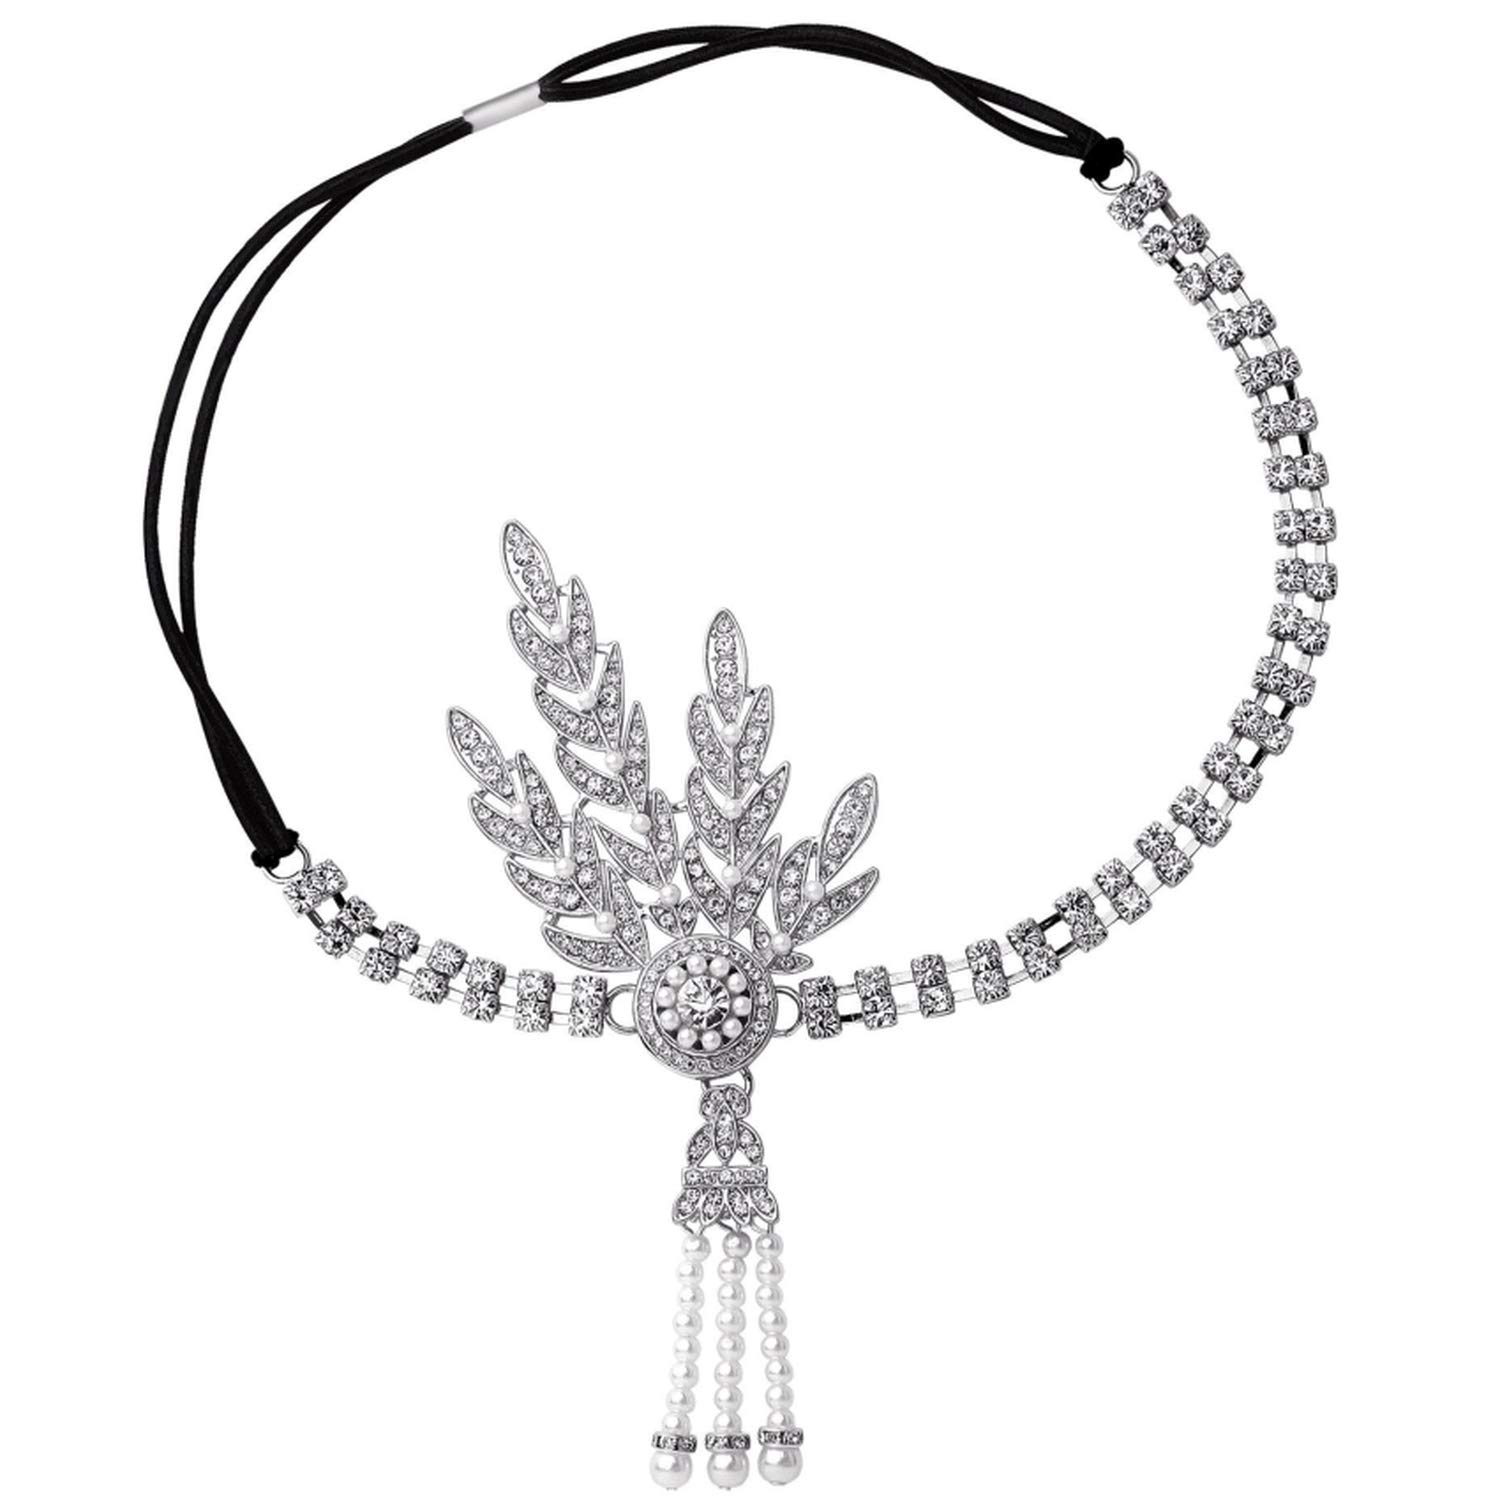 Vintage 1920S Great Headband Flapper Girl Fancy Party Costume Hair Accessories Stone Pearl Bridal Headpiece,Silver Tassel